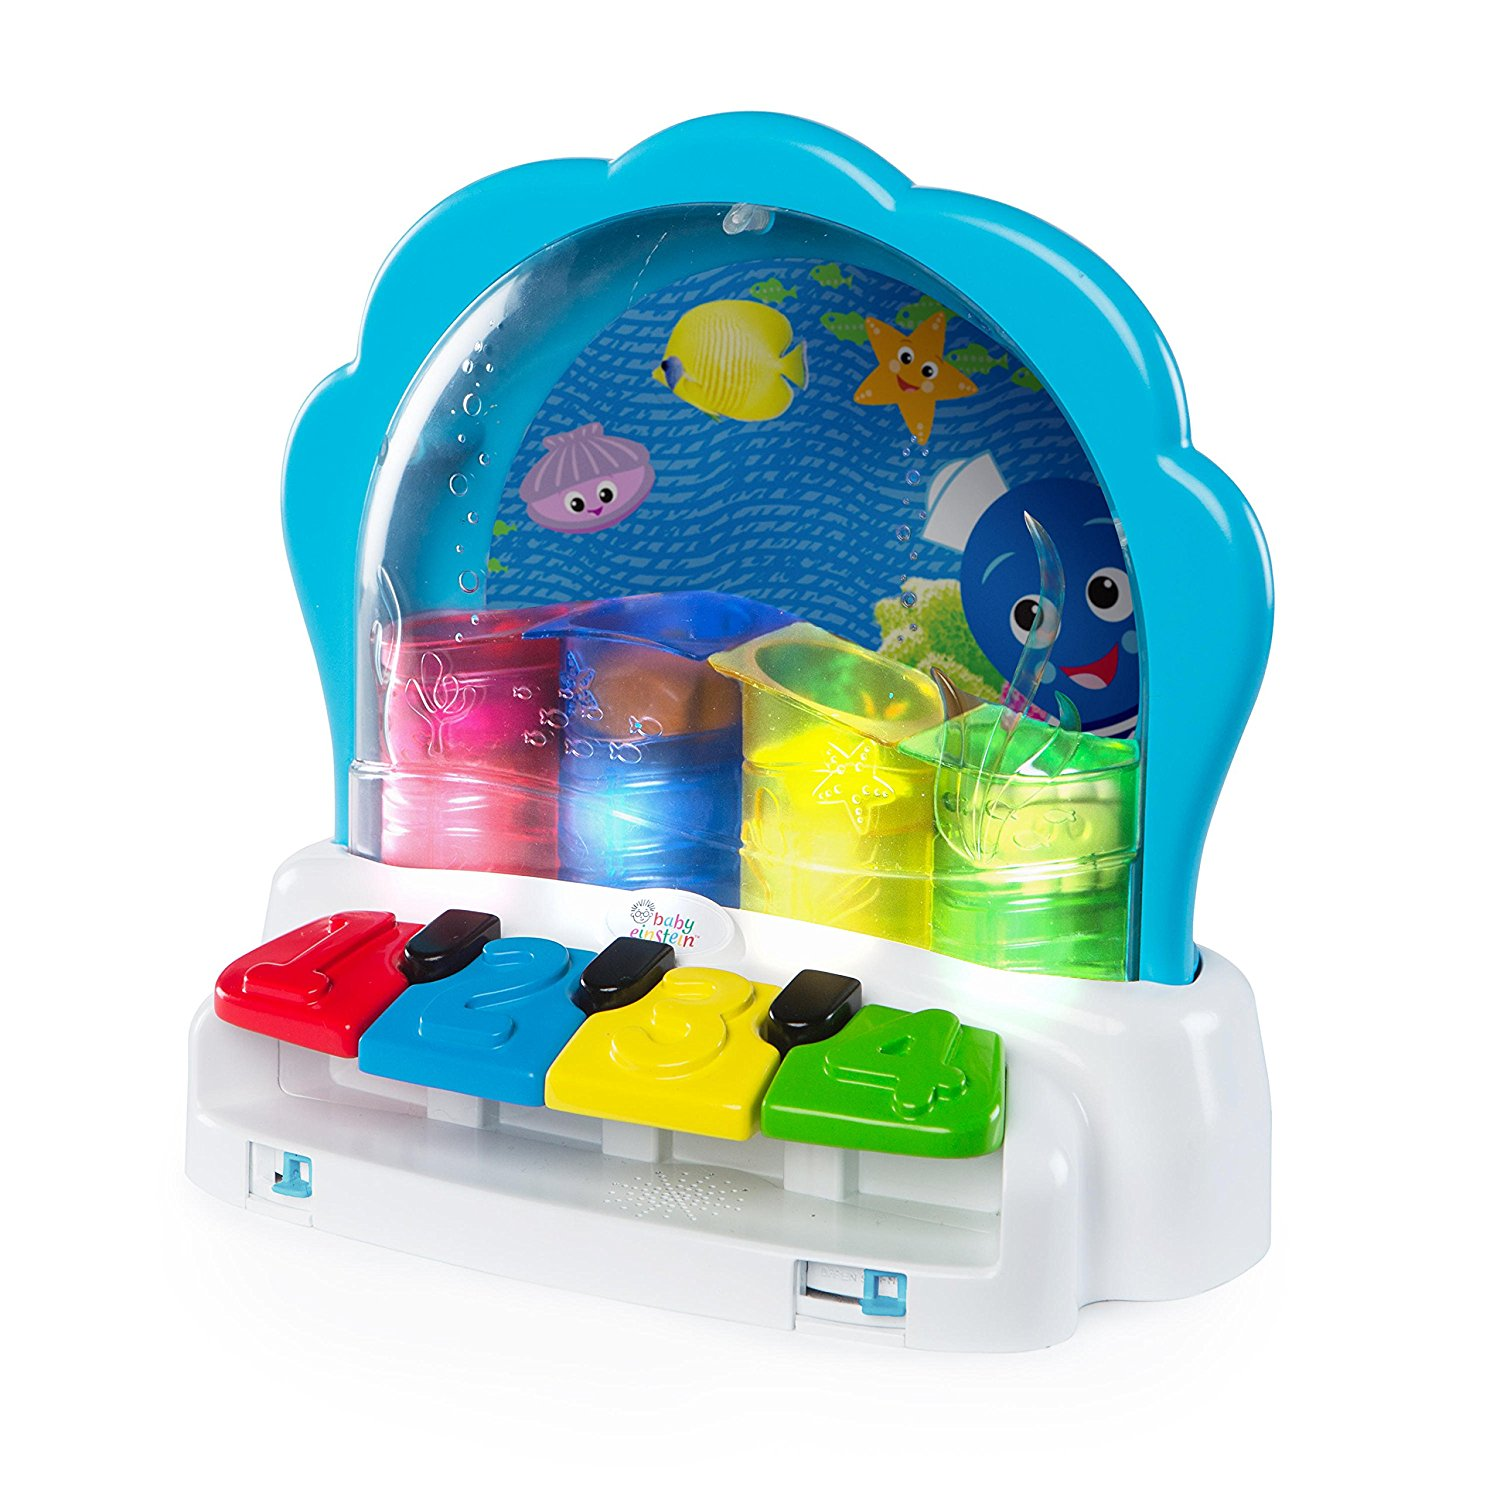 Pop & Glow Piano, Press the buttons to watch the colourful characters pop across the ocean... by